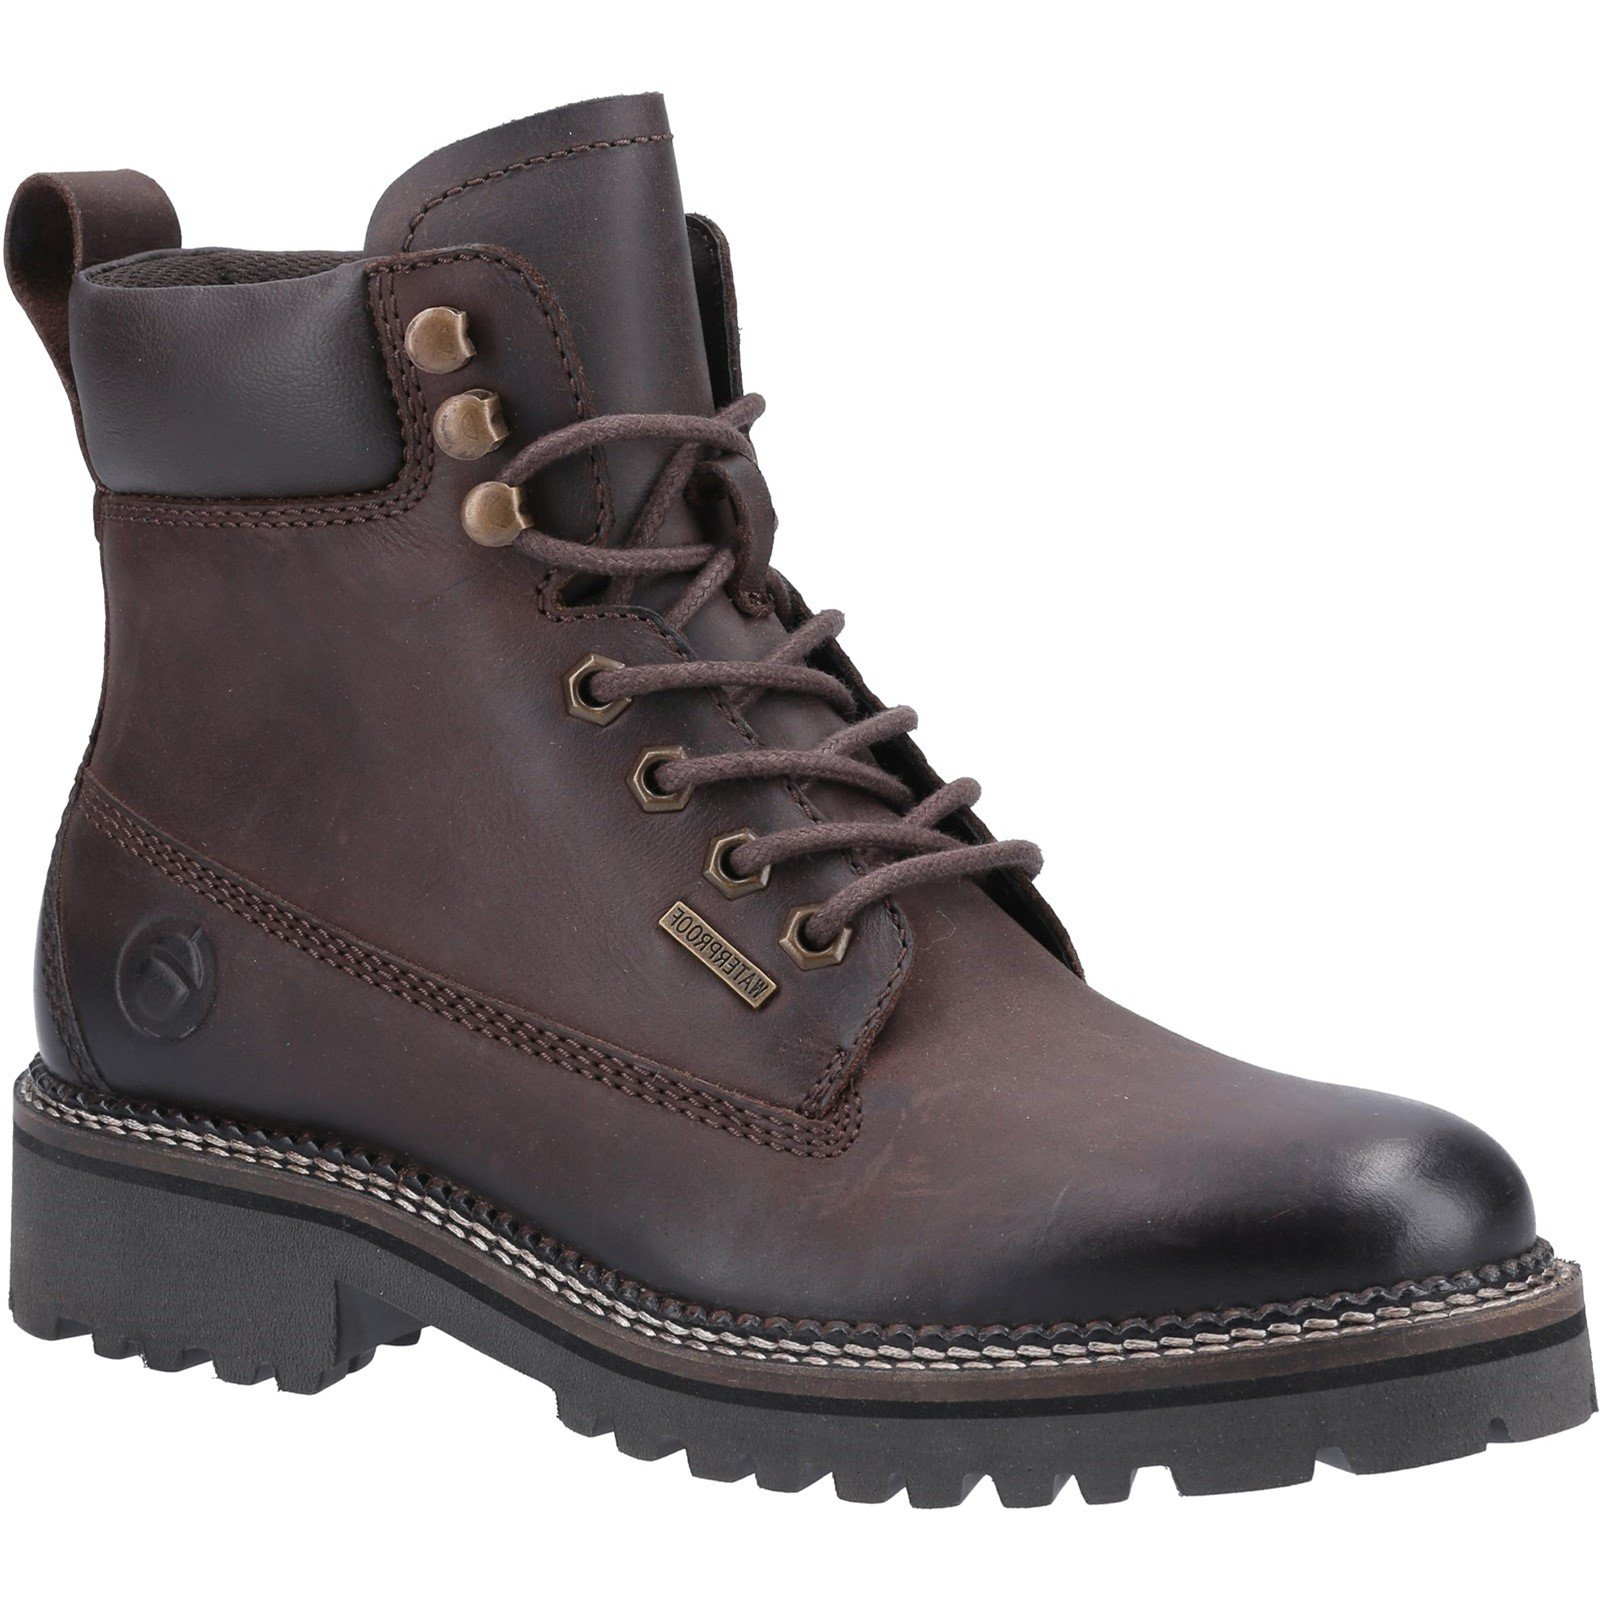 Cotswold Women's Chipping High Top Lace Up Ankle Boot Various Colours 32974 - Brown 3